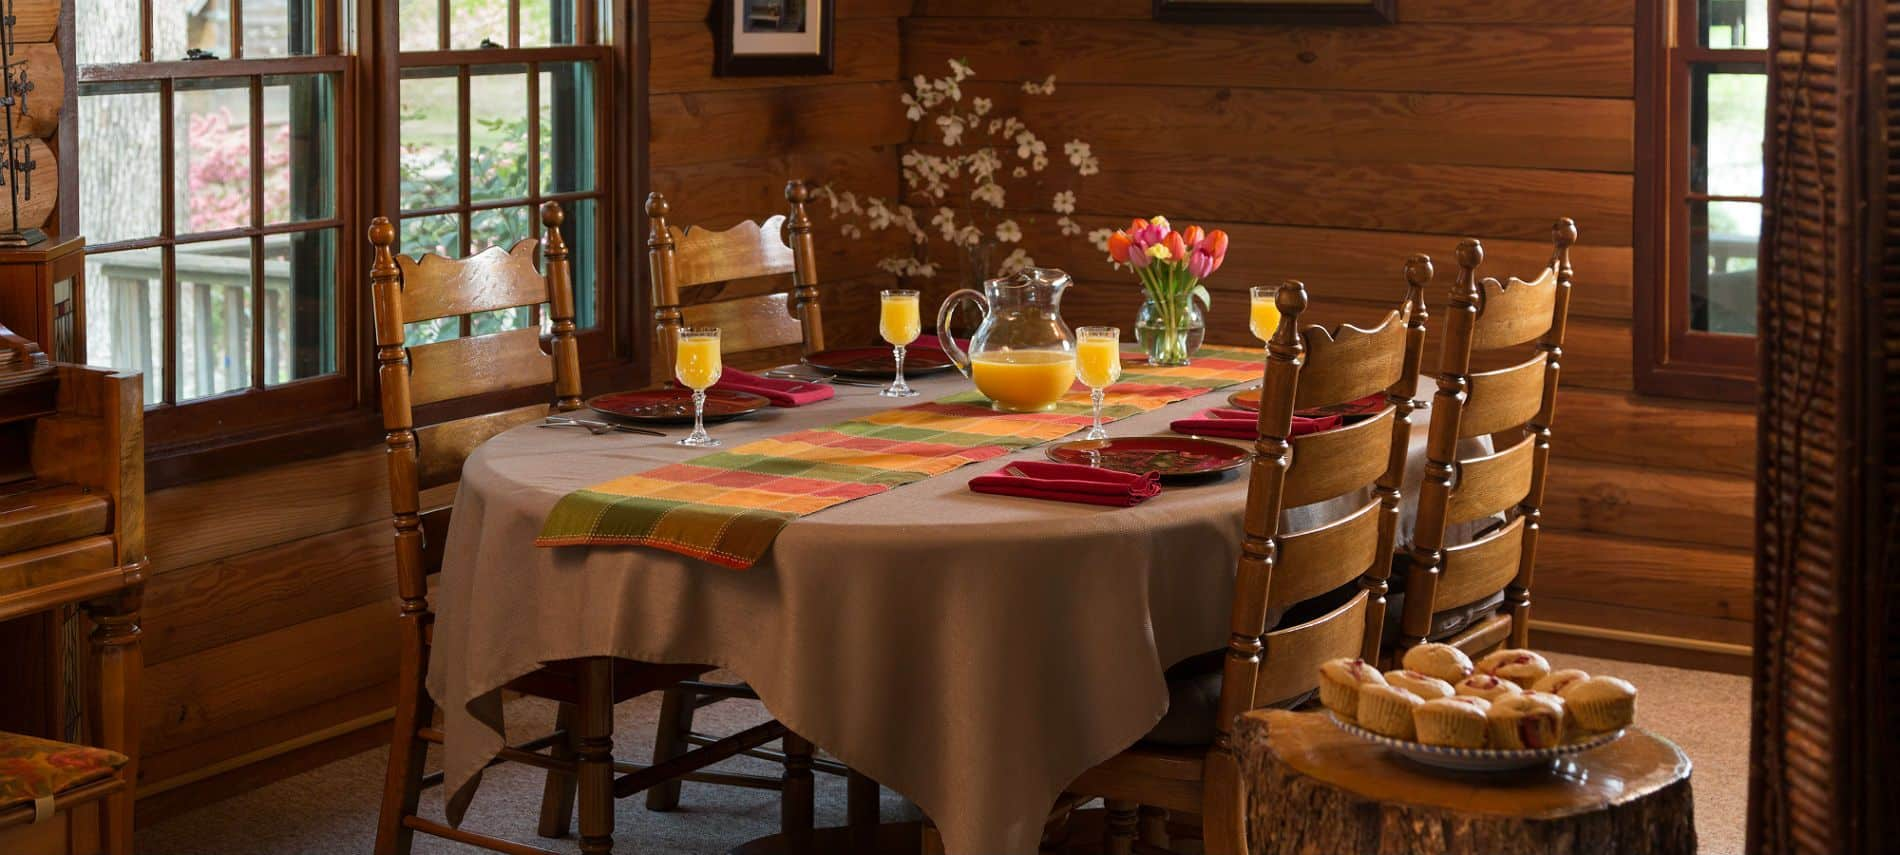 Dining room table set for four people with tan linens and multi colored napkins, orange juice and fresh flowers.